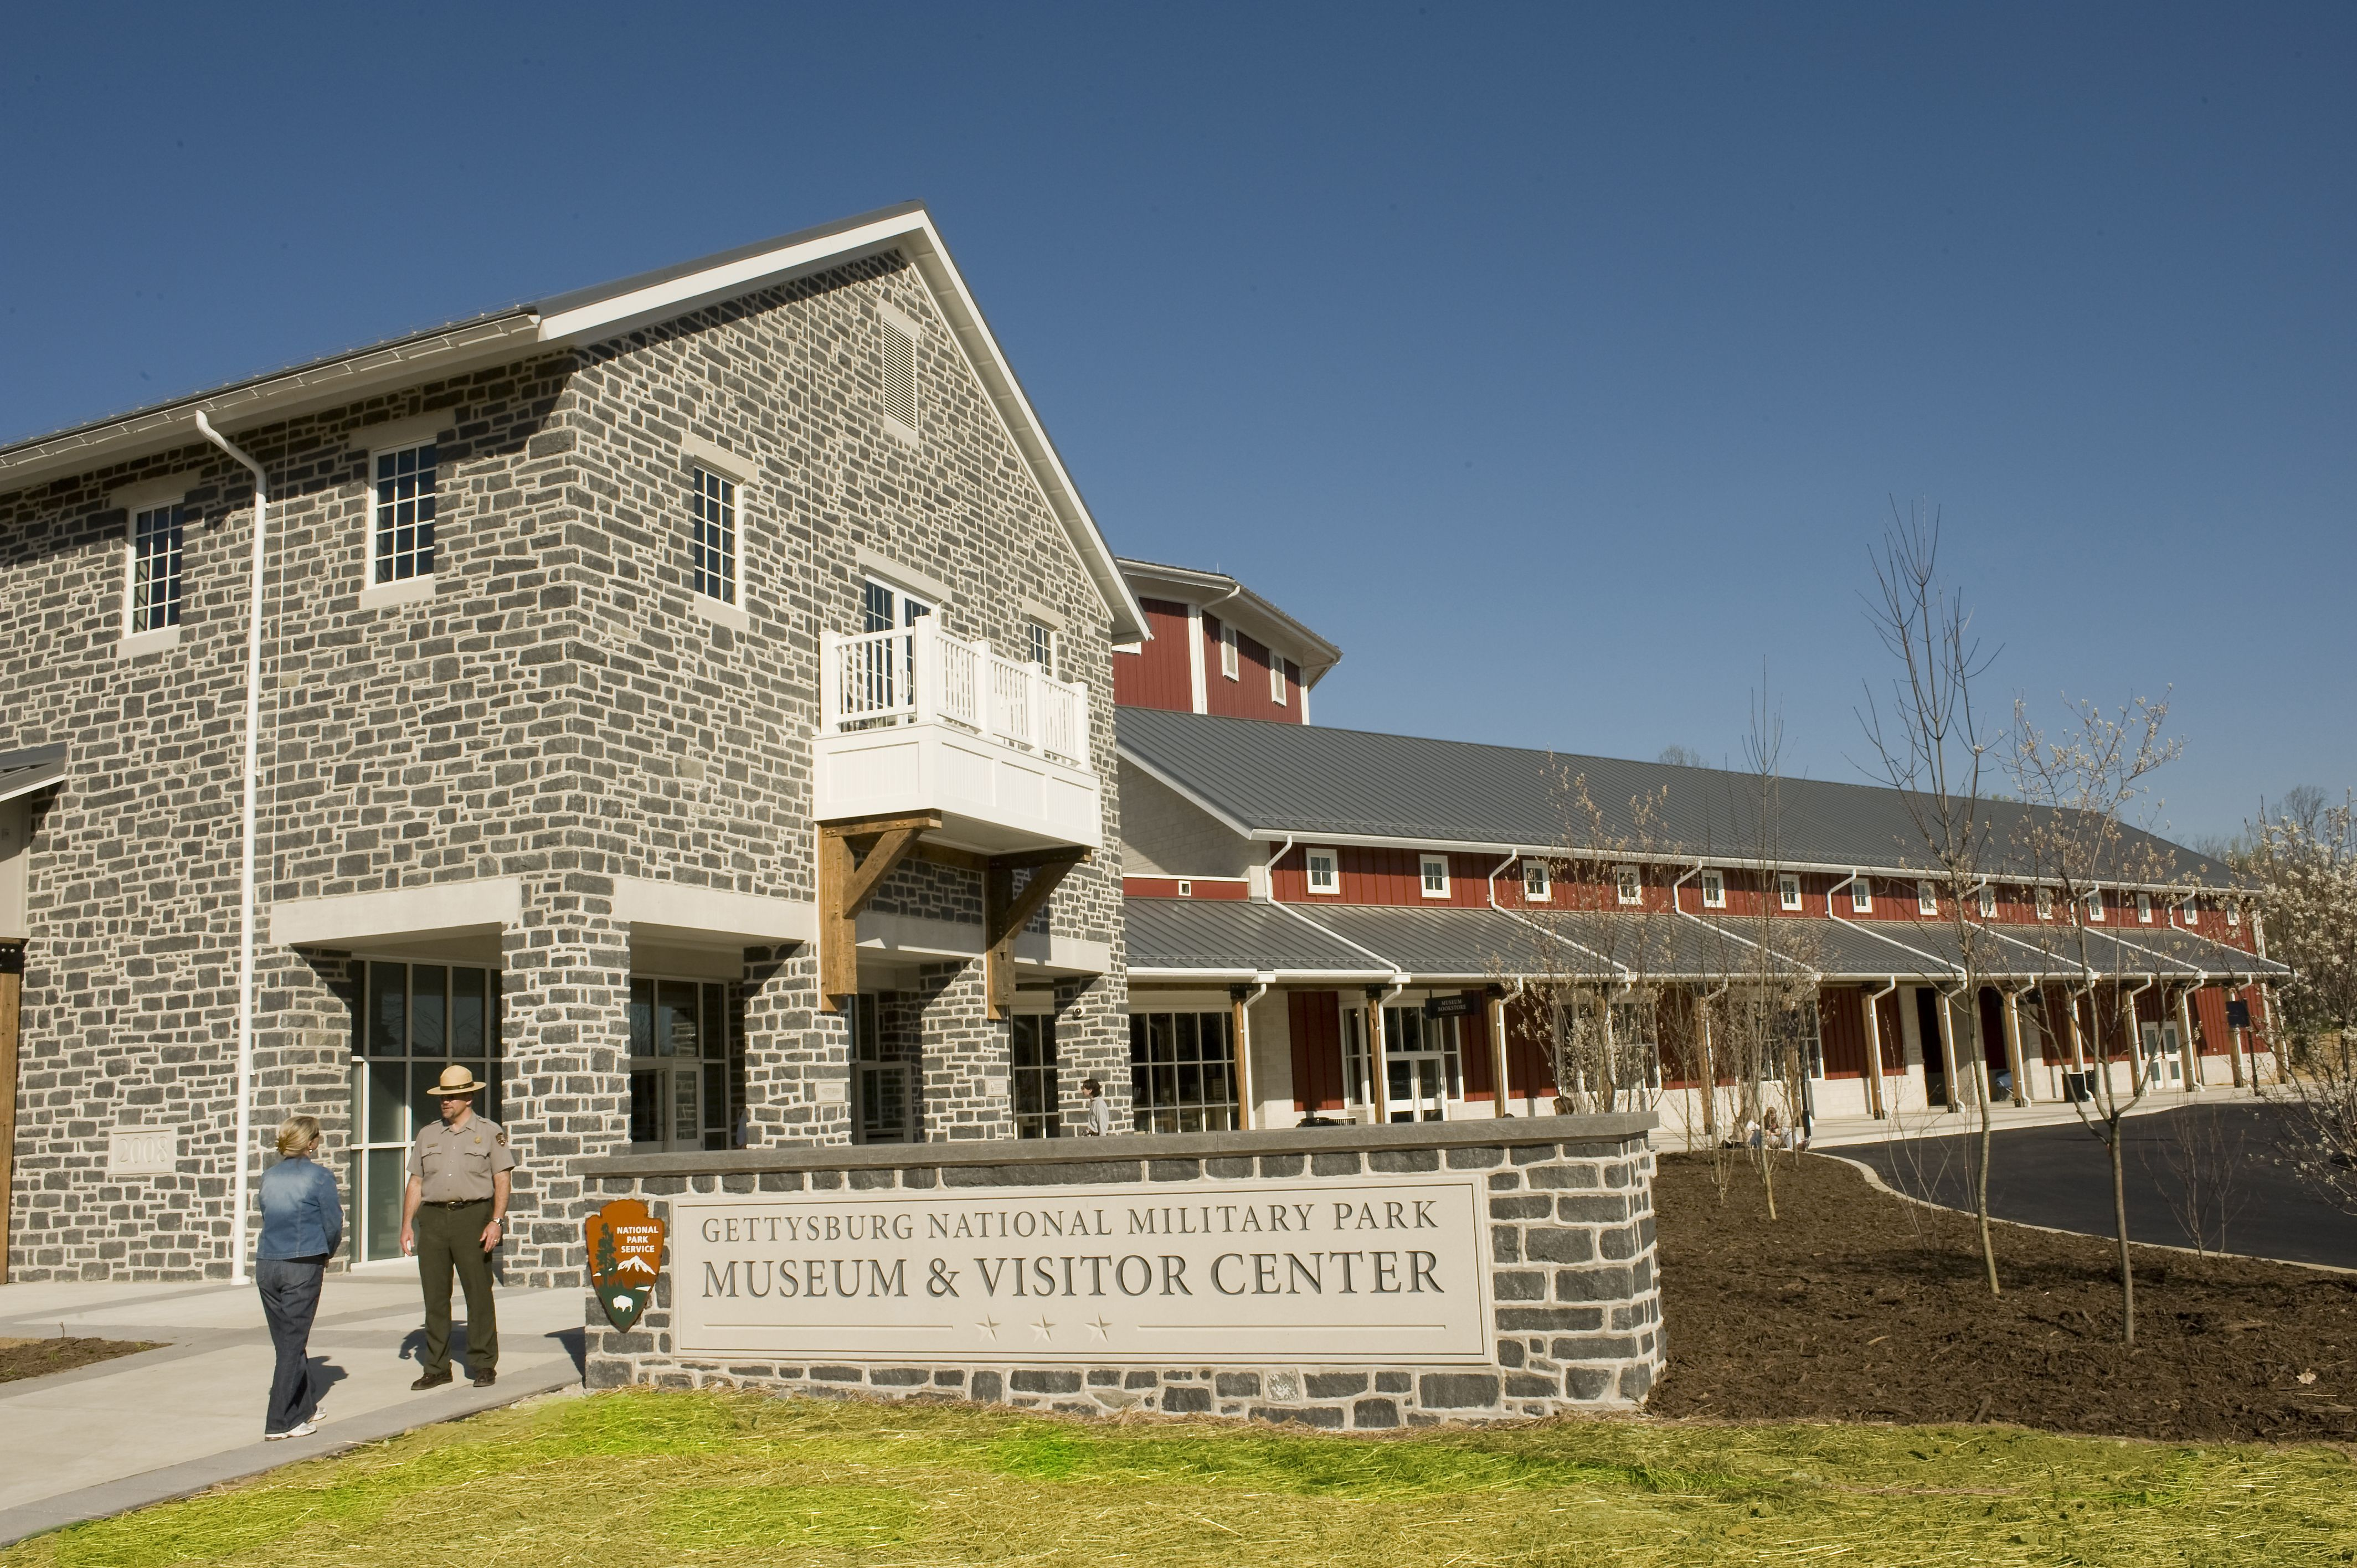 The Gettysburg National Military Park Museum Visitor Center At